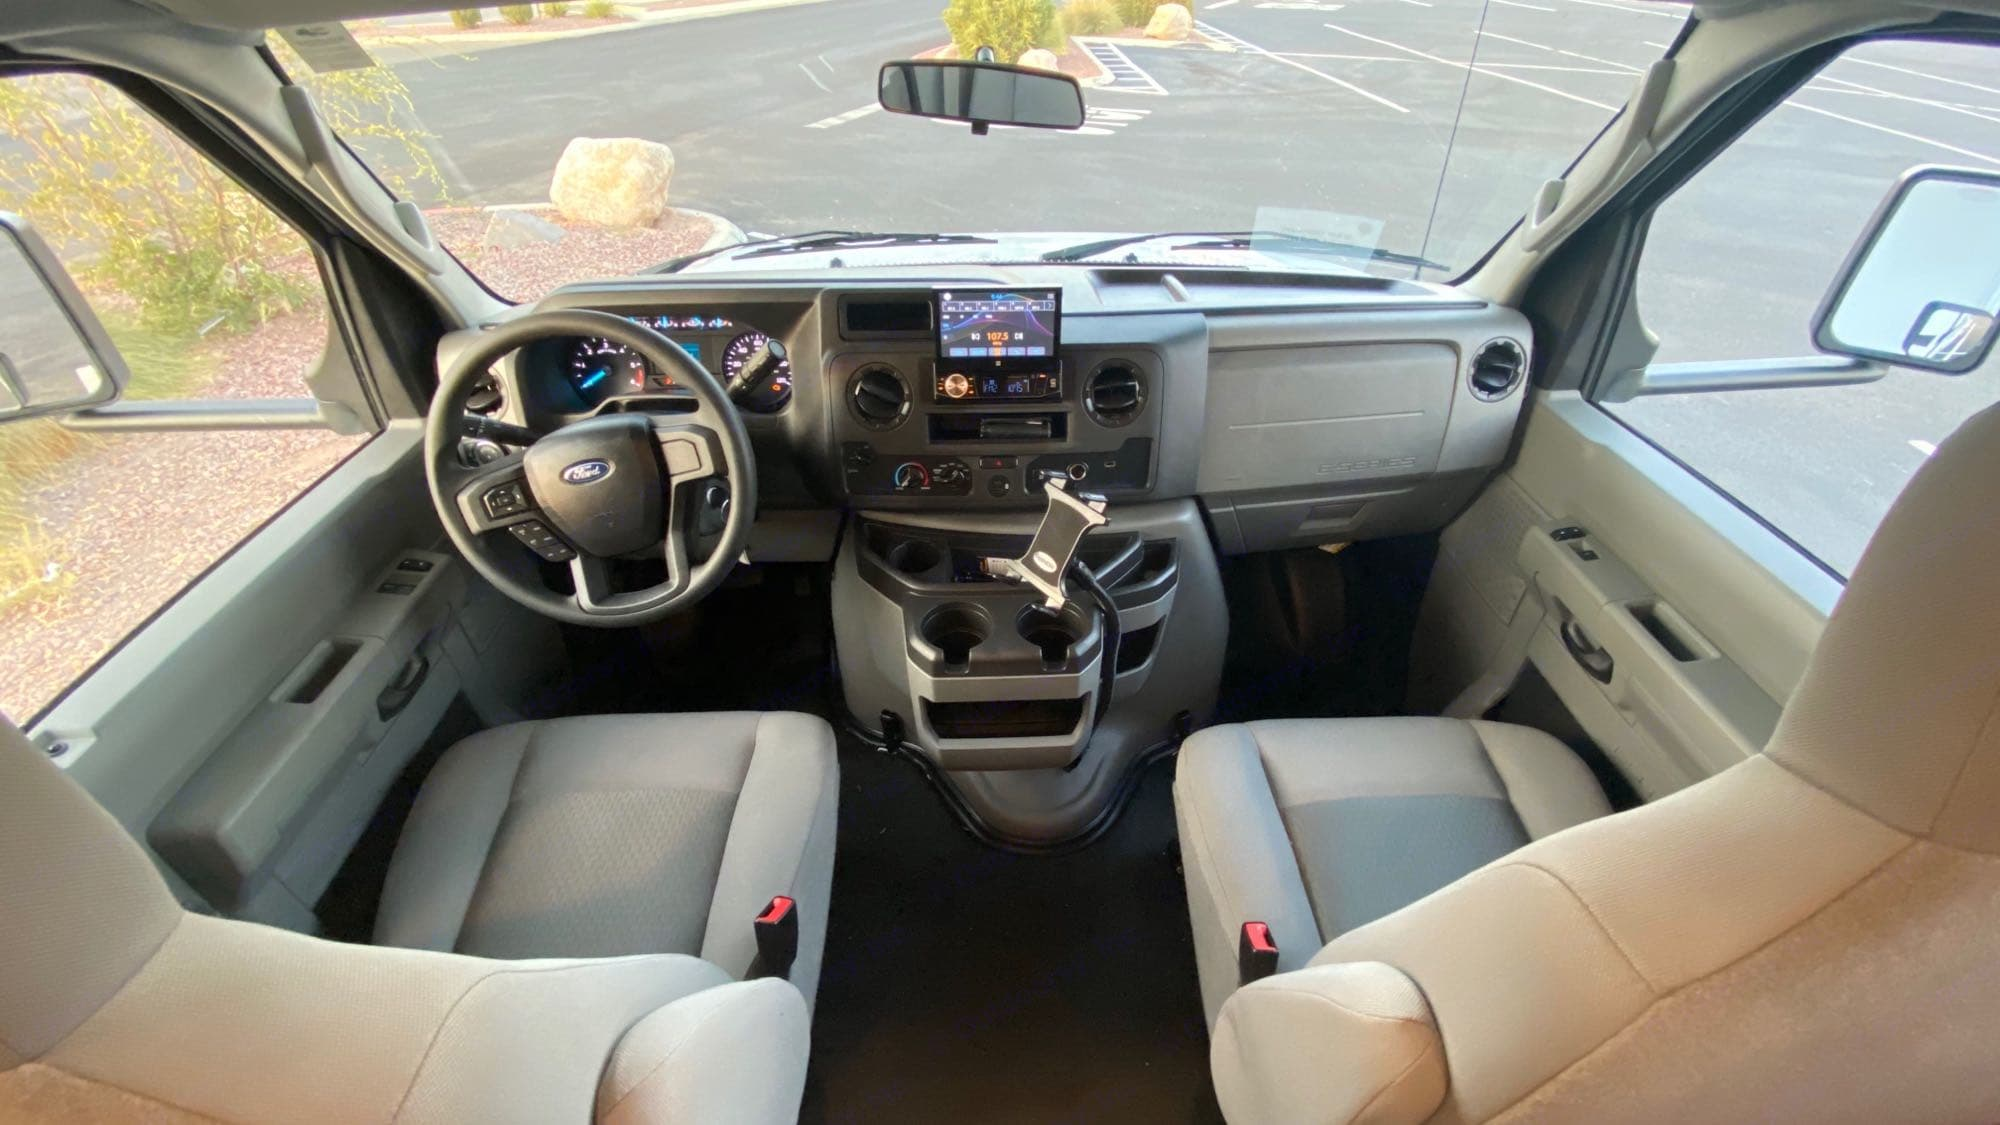 Cab area with AM/FM Stereo CD with Backup Camera. Coachmen Freelander 2021